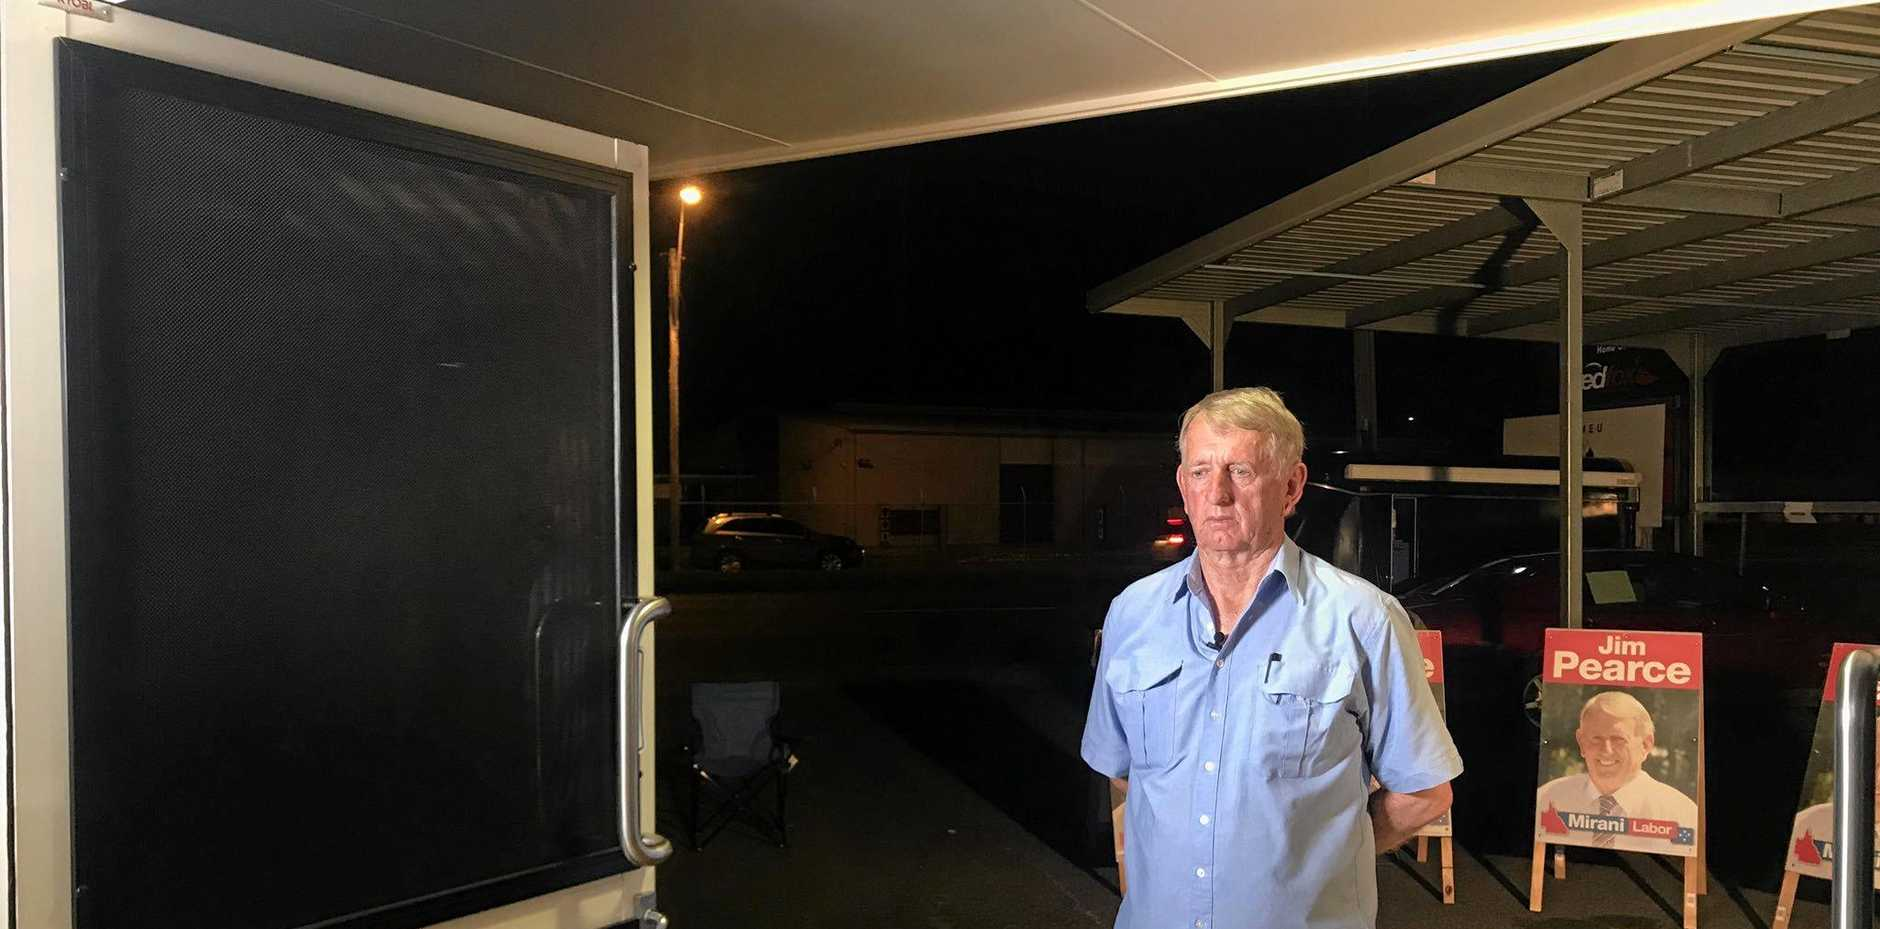 ALP member for Mirani Jim Pearce said chances are he will lose to One Nation.